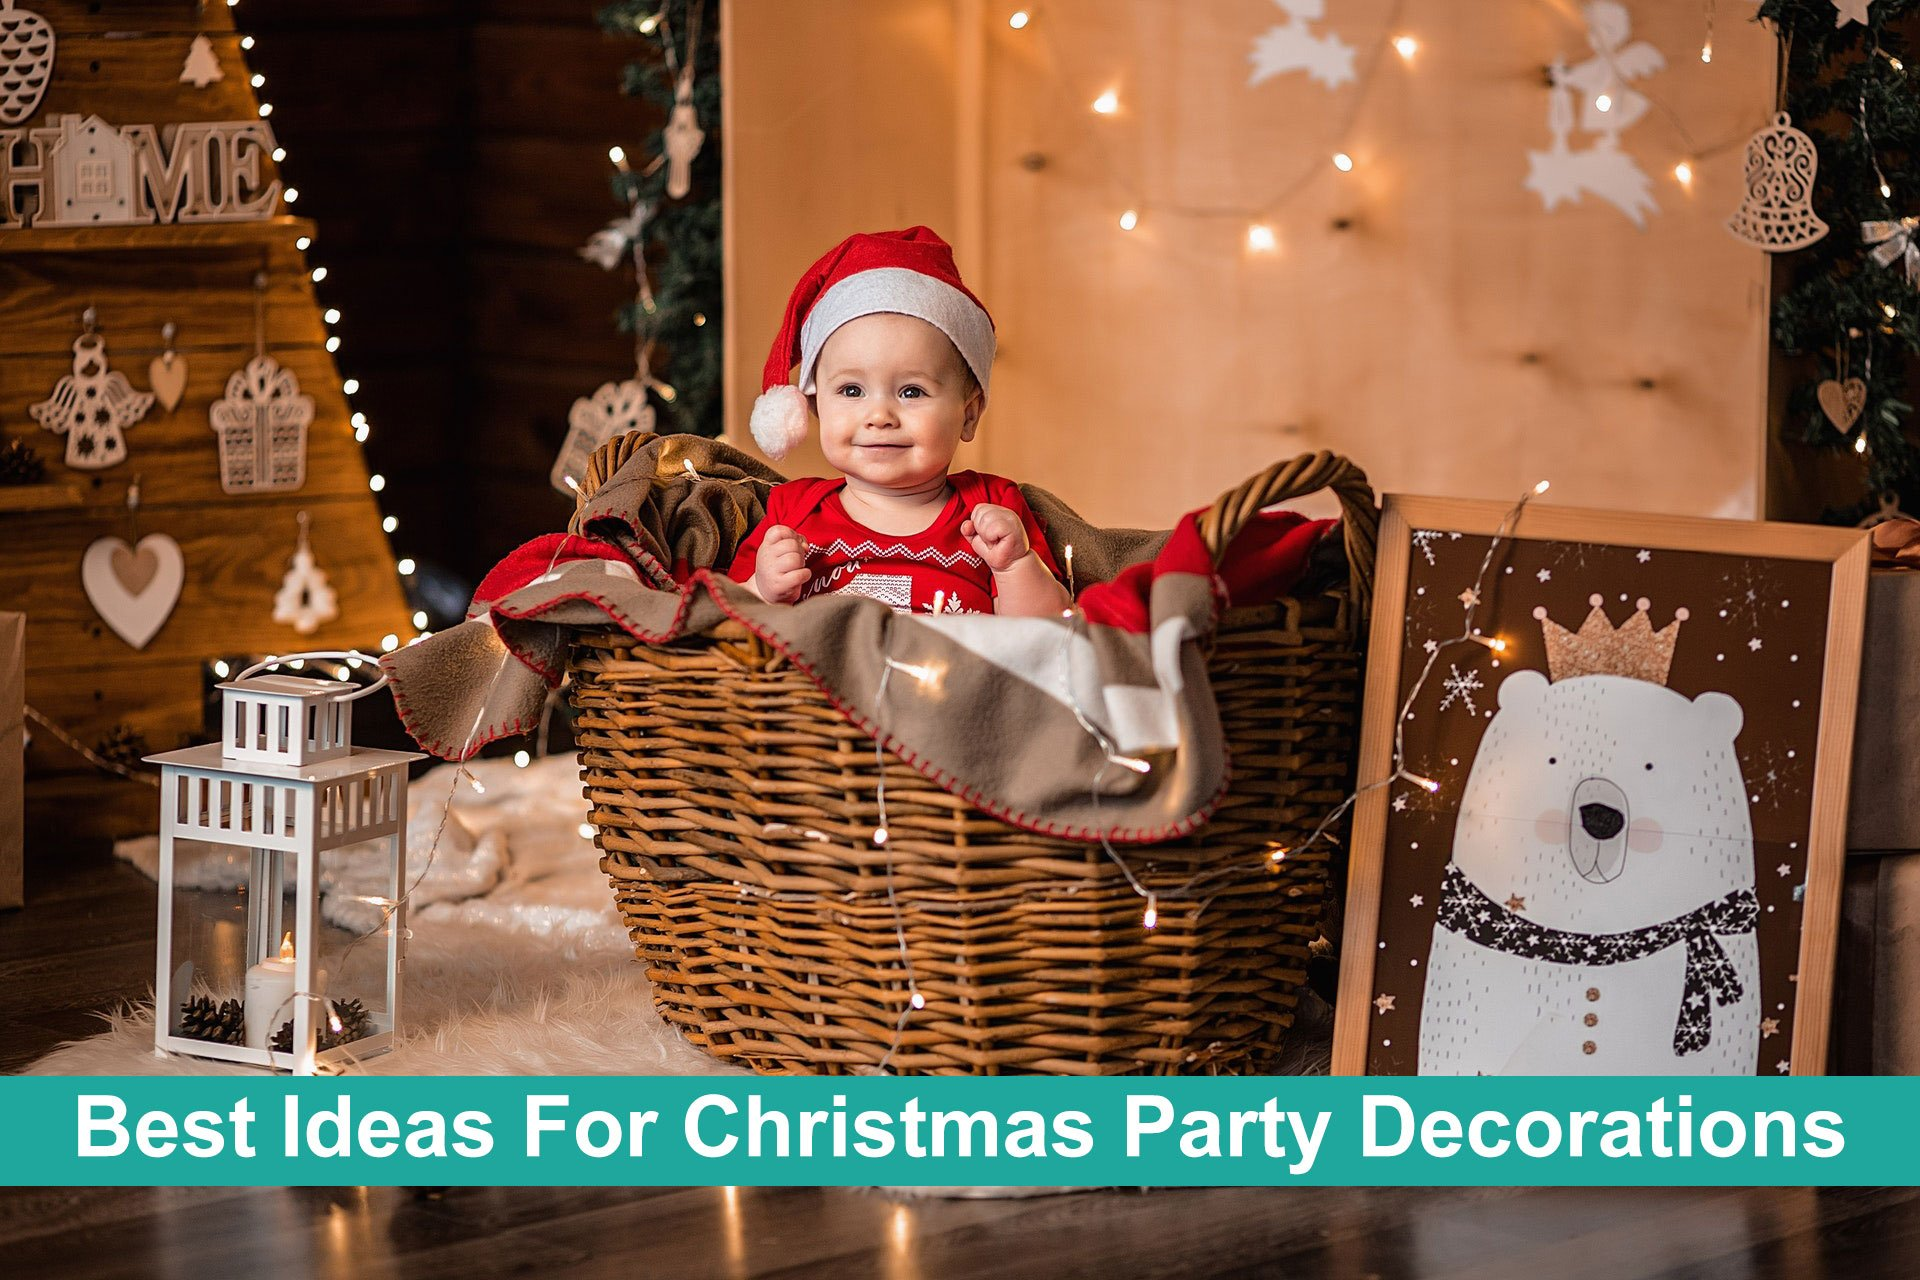 Best Ideas For Christmas Party Decorations